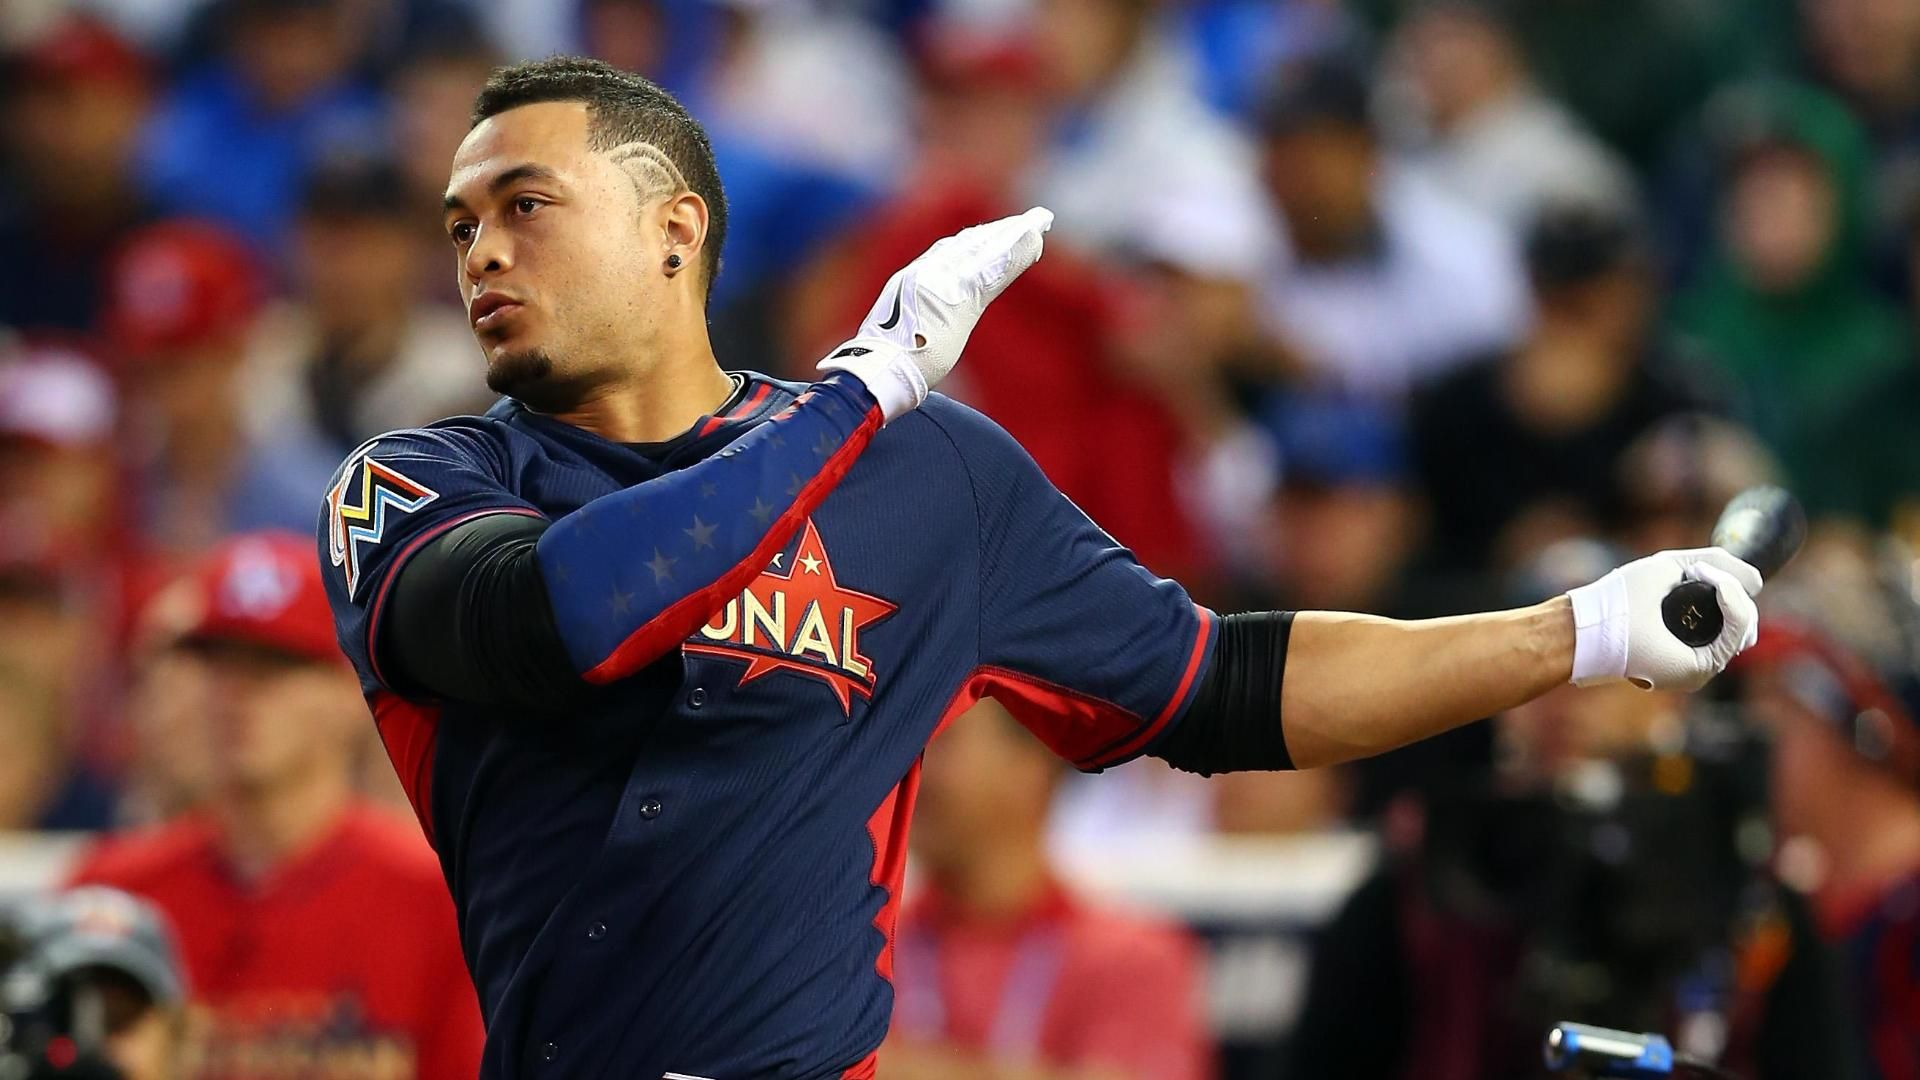 Stanton Nearly Blasts Ball Out Of Park